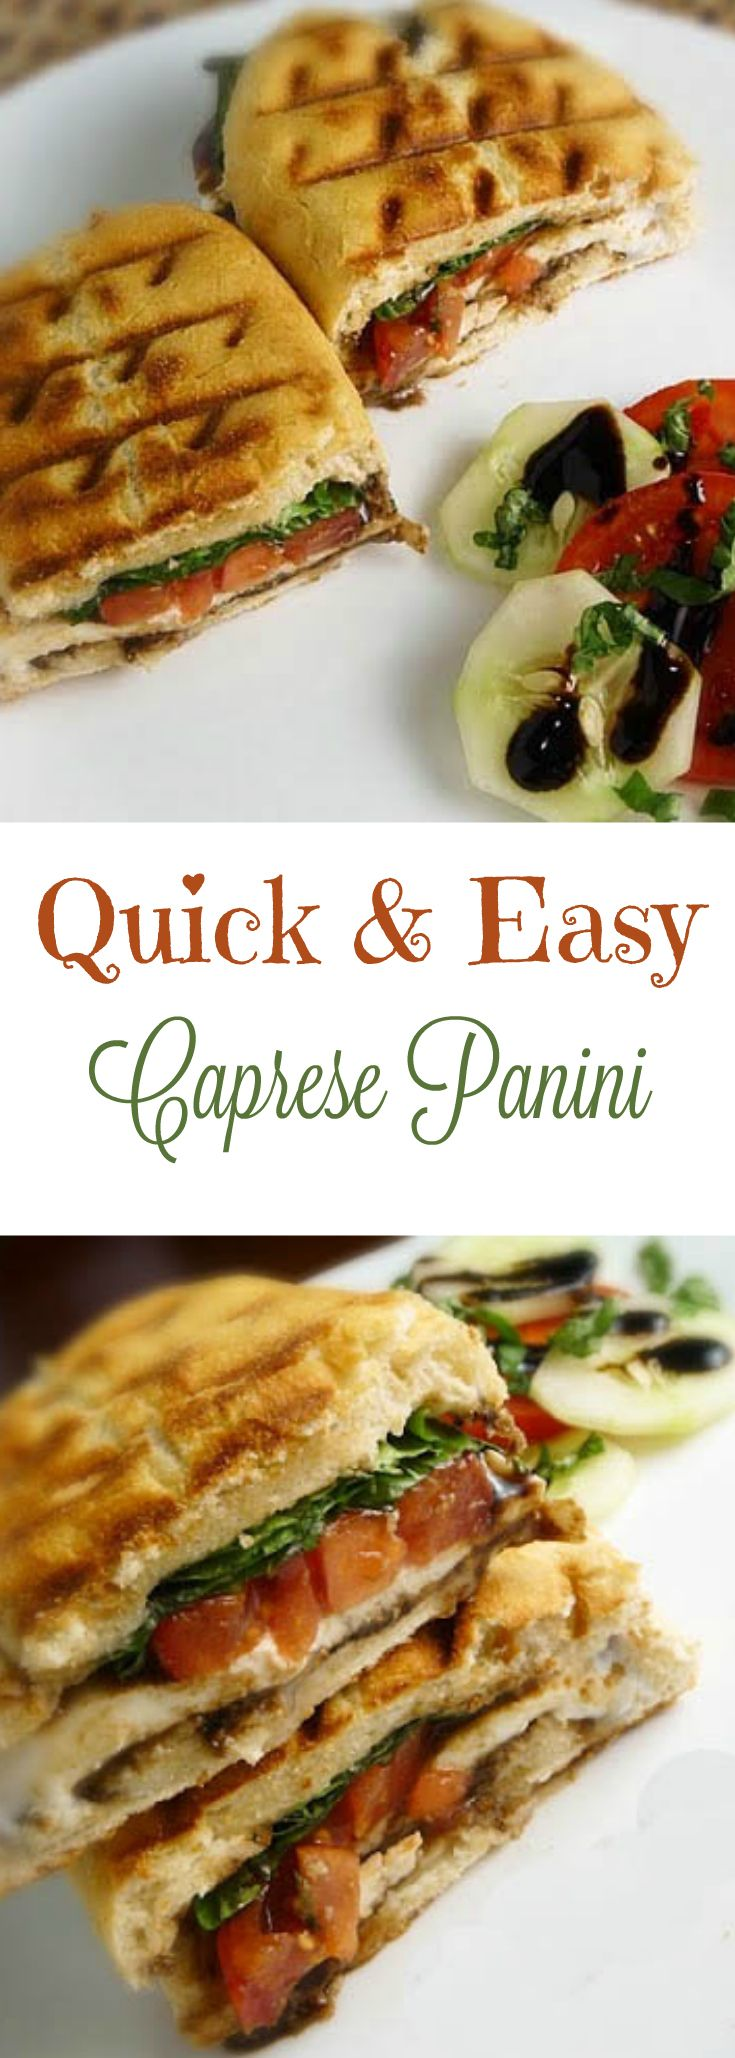 Caprese Panini Sandwich, fresh, delicious and tastes like summer! Stay cool, and just use your panini press!